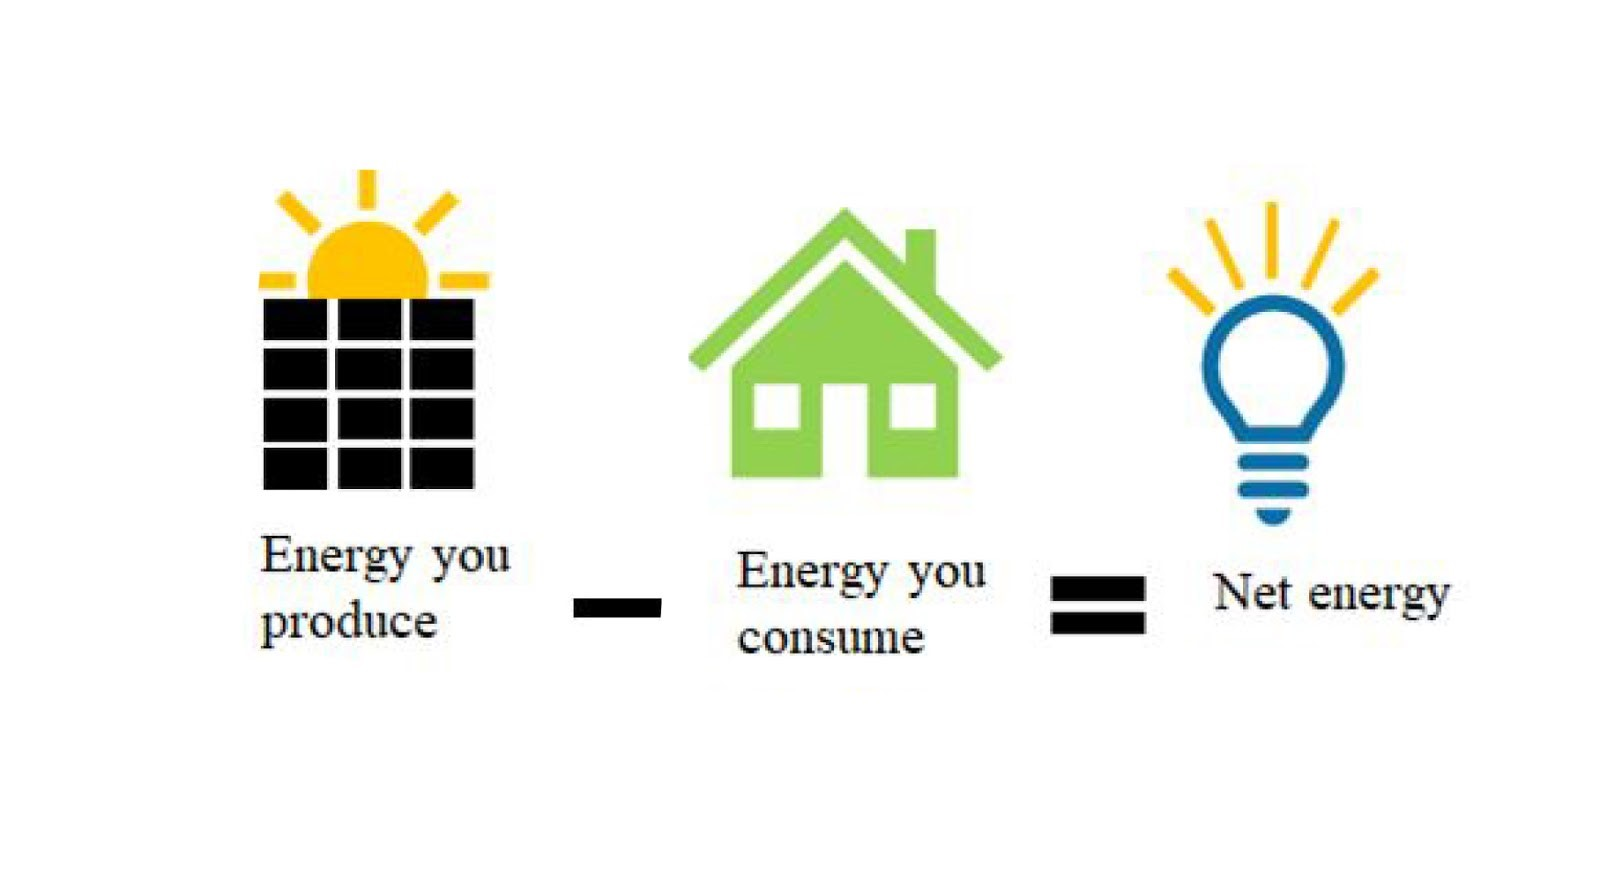 Subtract the energy you consume from the energy you produce and the result is your net energy. Consuming more than you produce results in negative net energy and you owe the utility. Producing more than you consume results in positive net energy that can be sold back to the grid. Image: Climable.org